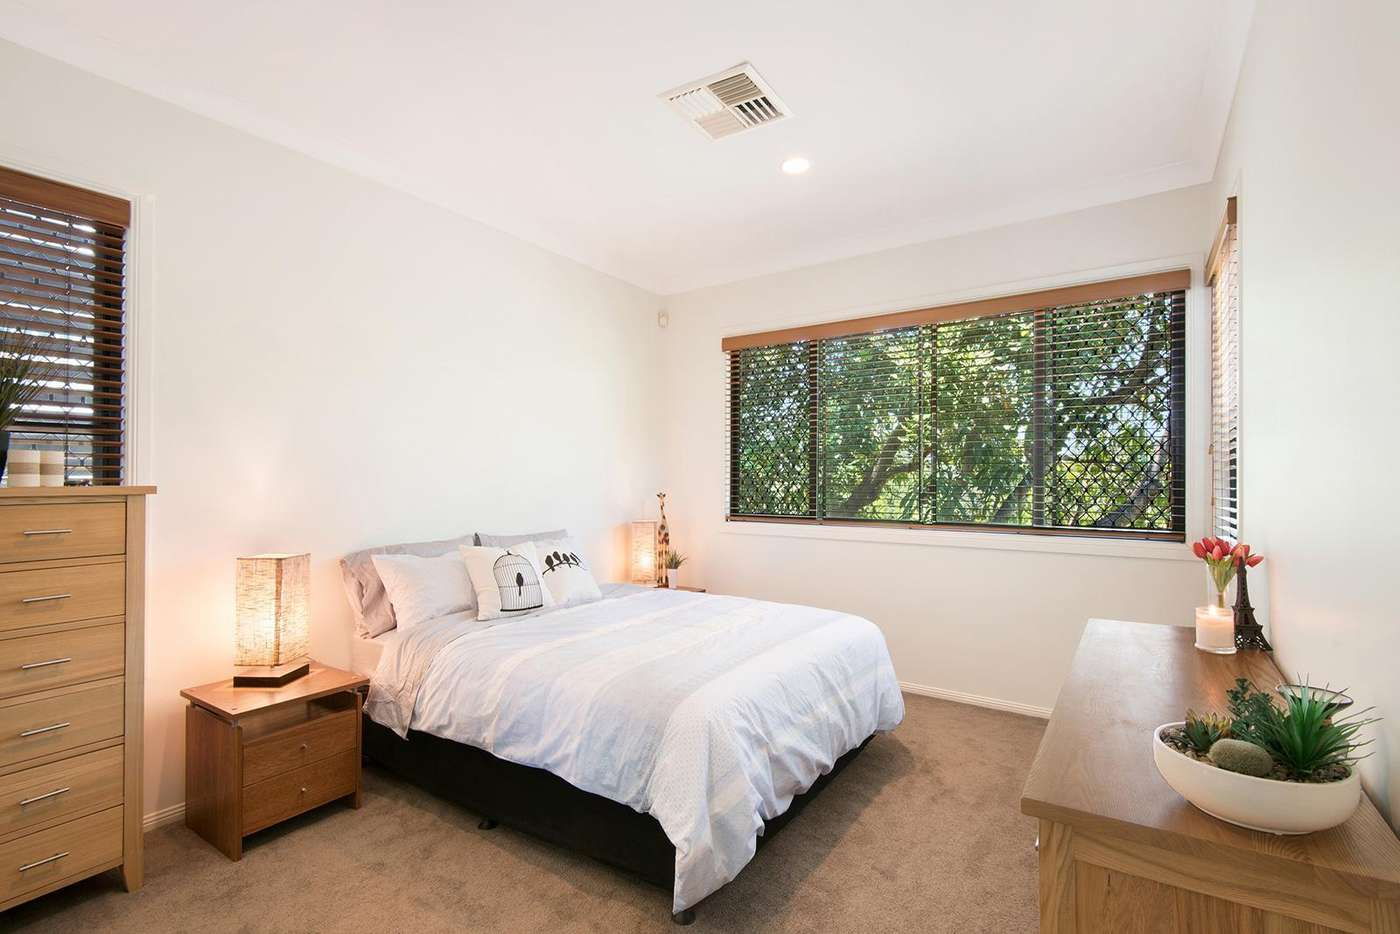 Sixth view of Homely house listing, 8 Ada Street, Toowong QLD 4066